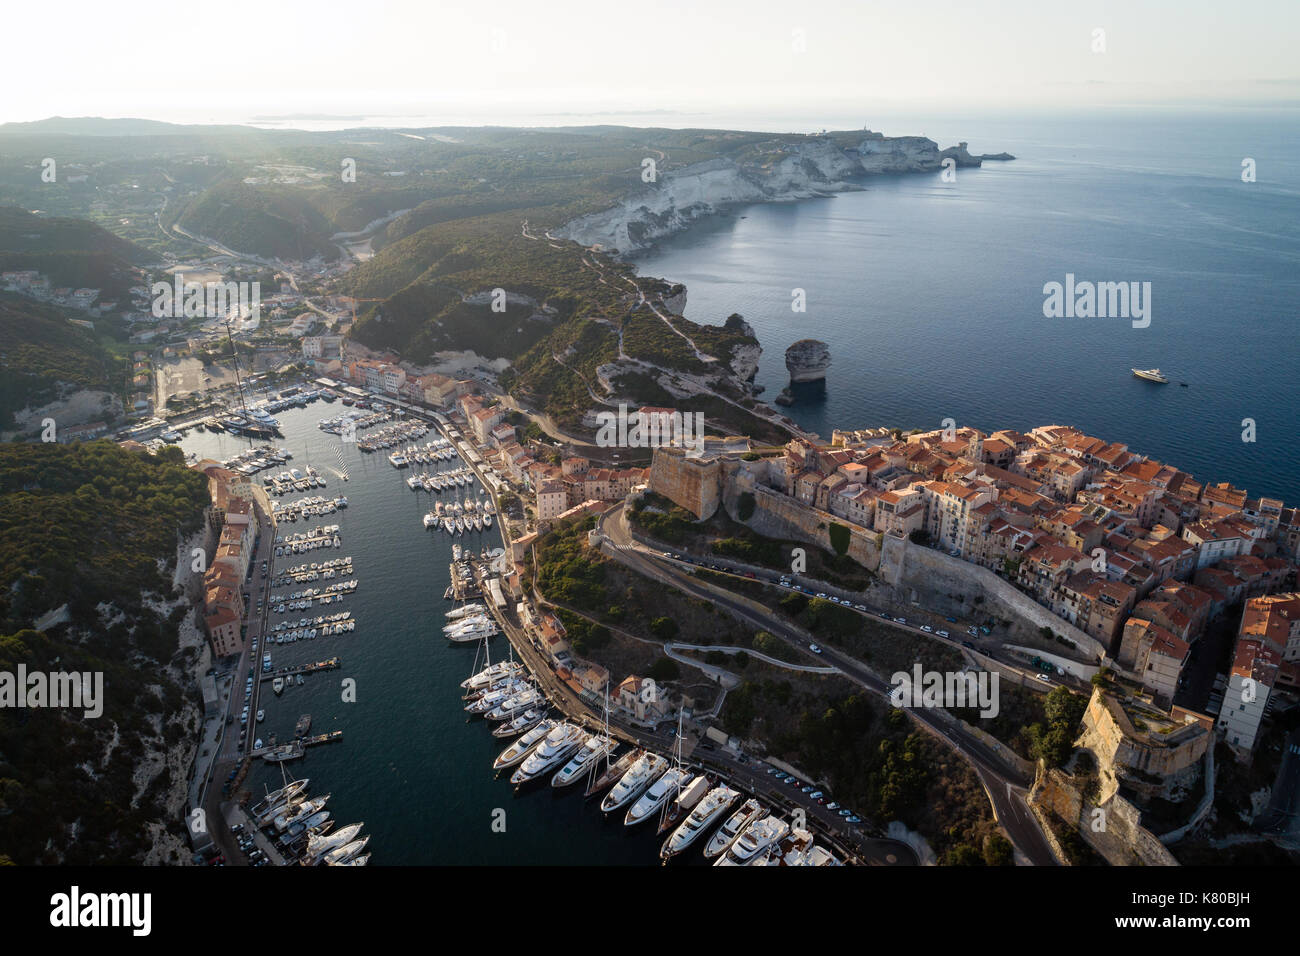 Aerial view of boats and yachts in marina of historical city Bonifacio, Corsica, France - Stock Image